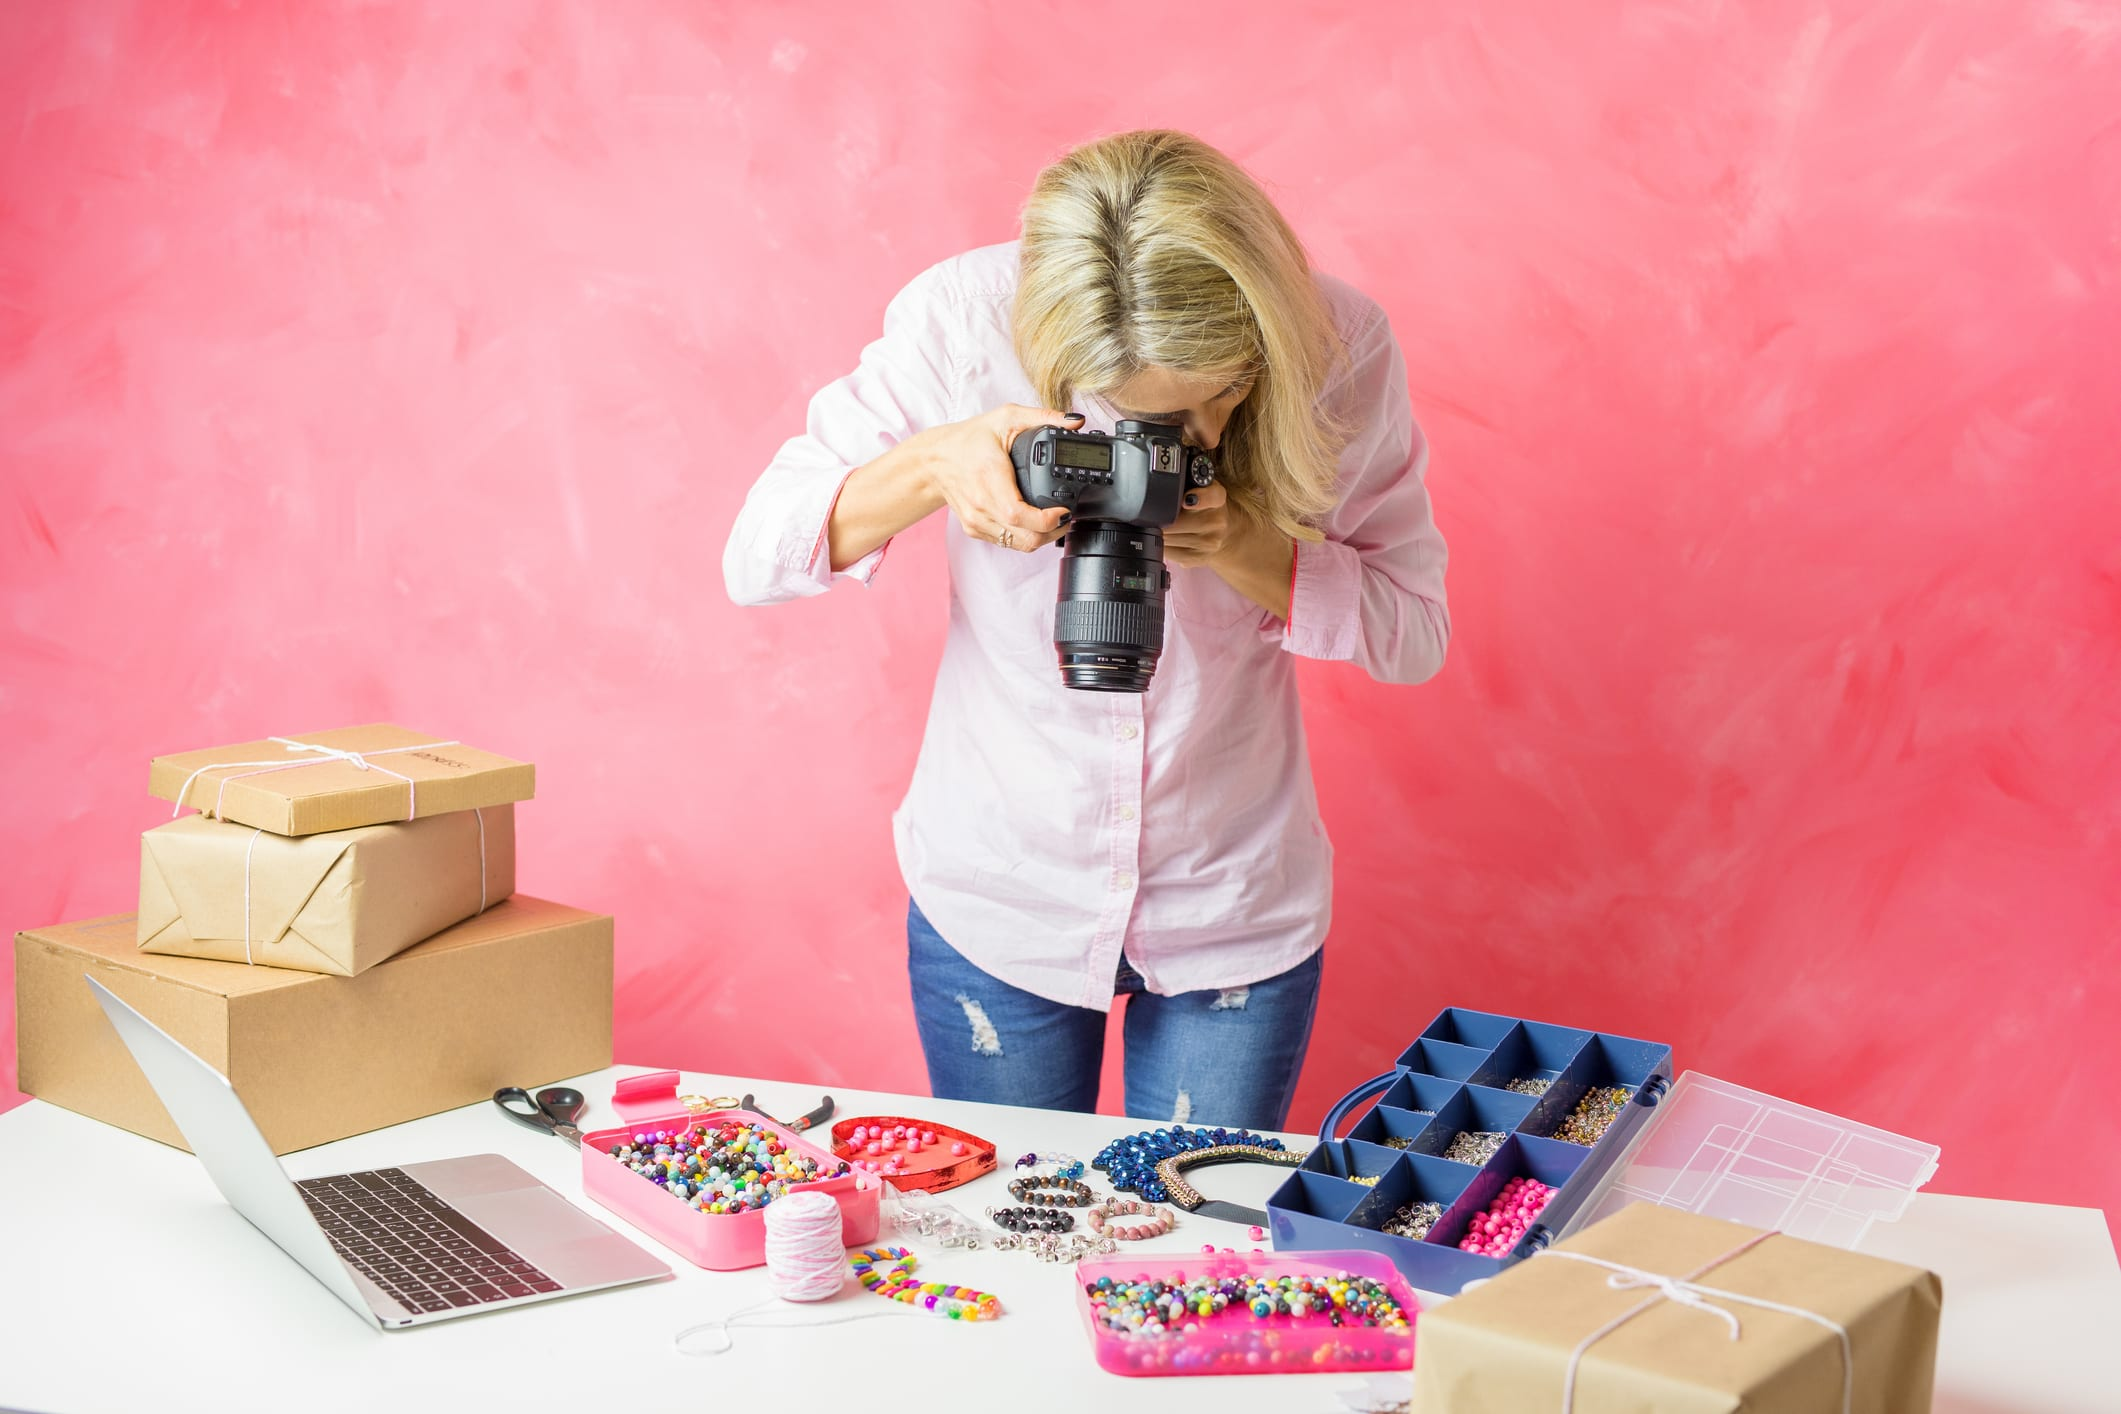 Woman Taking Photos of Products for Online Store